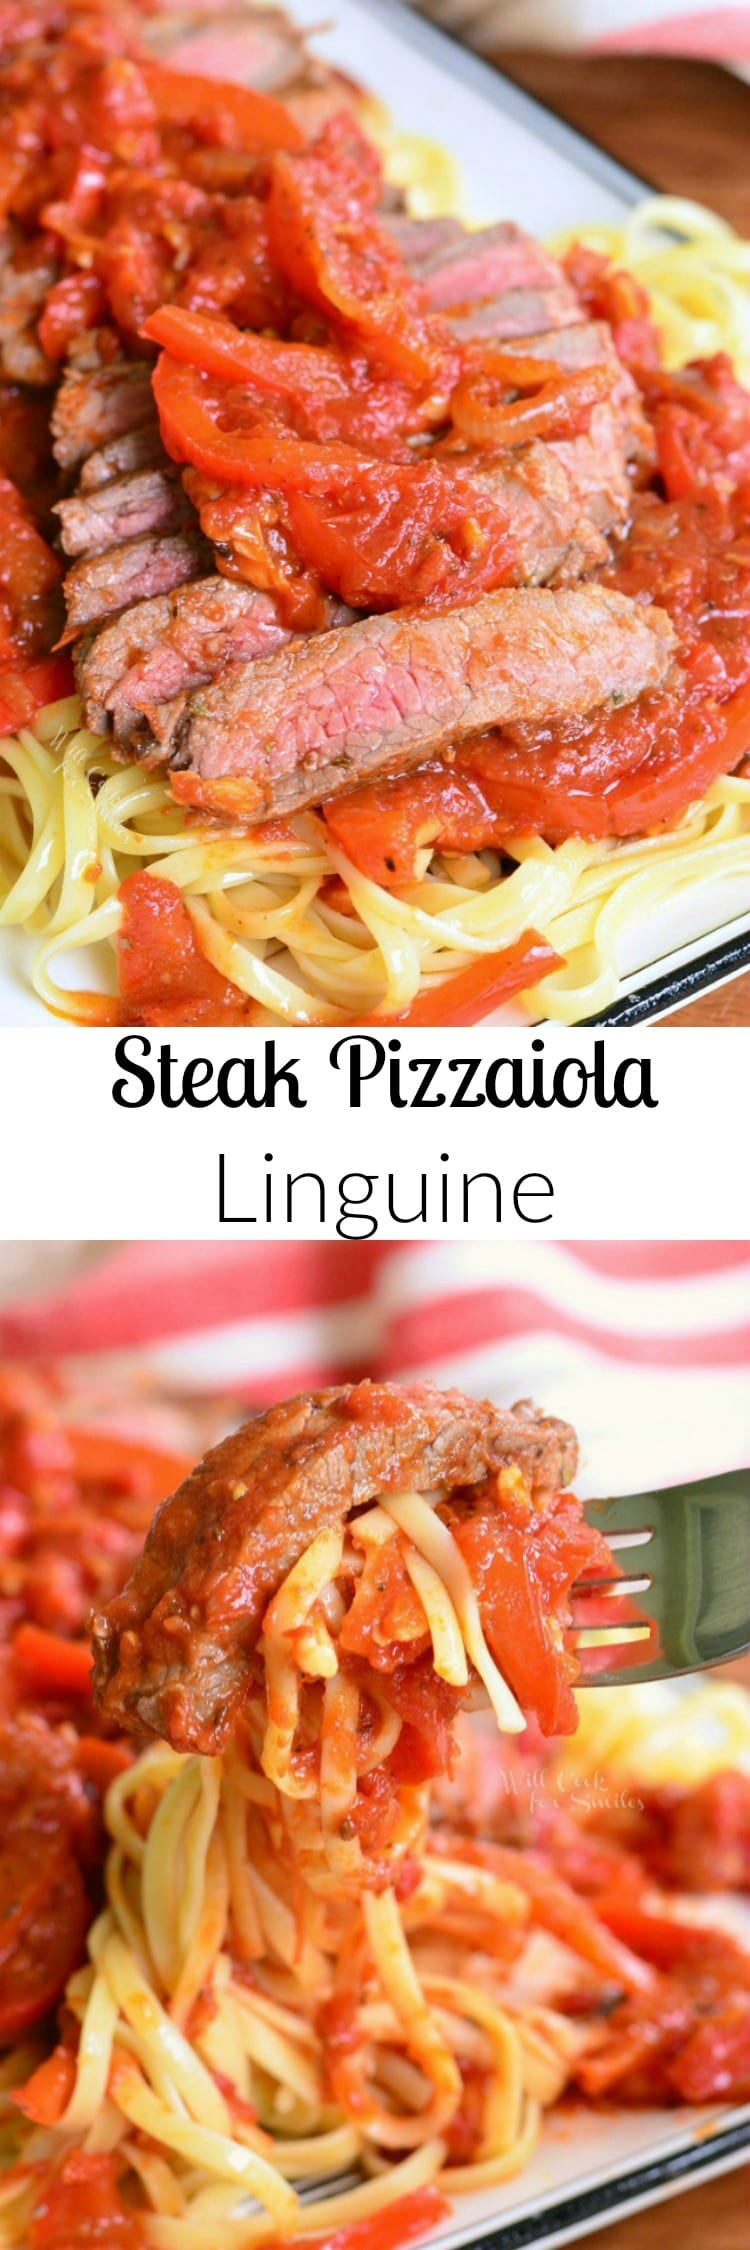 Steak Pizzaiola Linguine. Delicious Italian dish made with seared tender sirloin steak, easy pizzaiola sauce (tomato sauce), and served over linguine collage